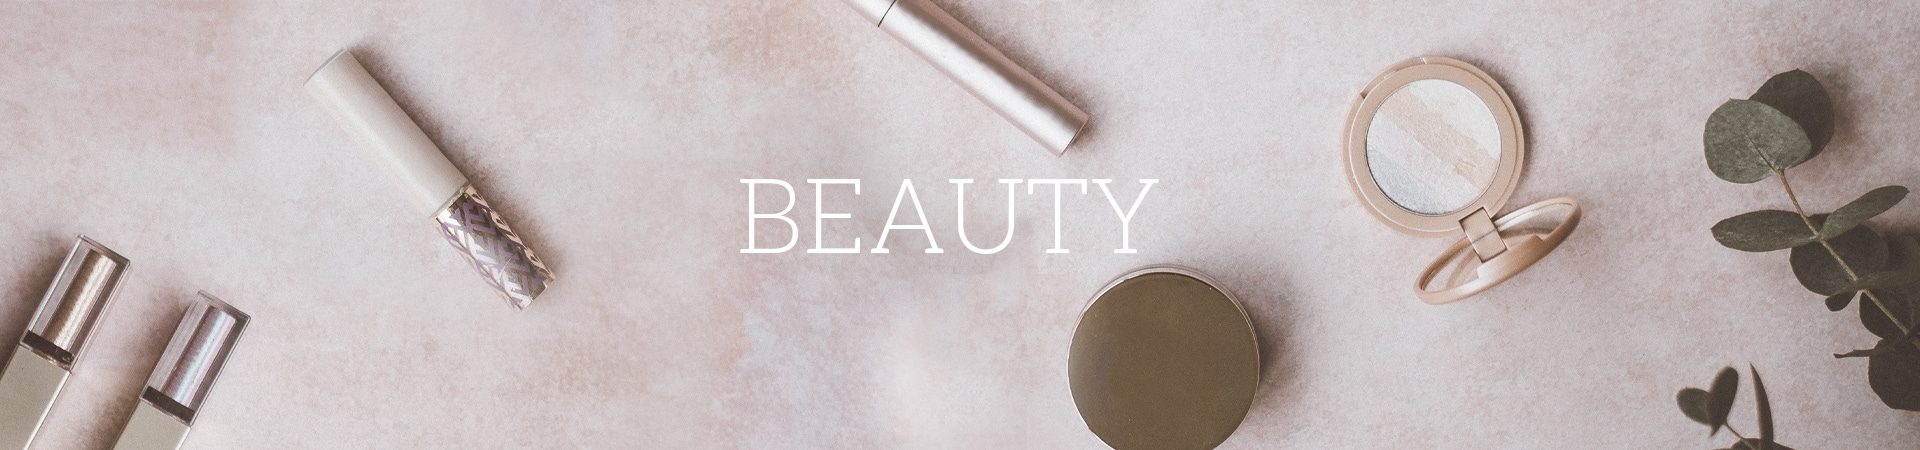 Natural Beauty Products Online Store